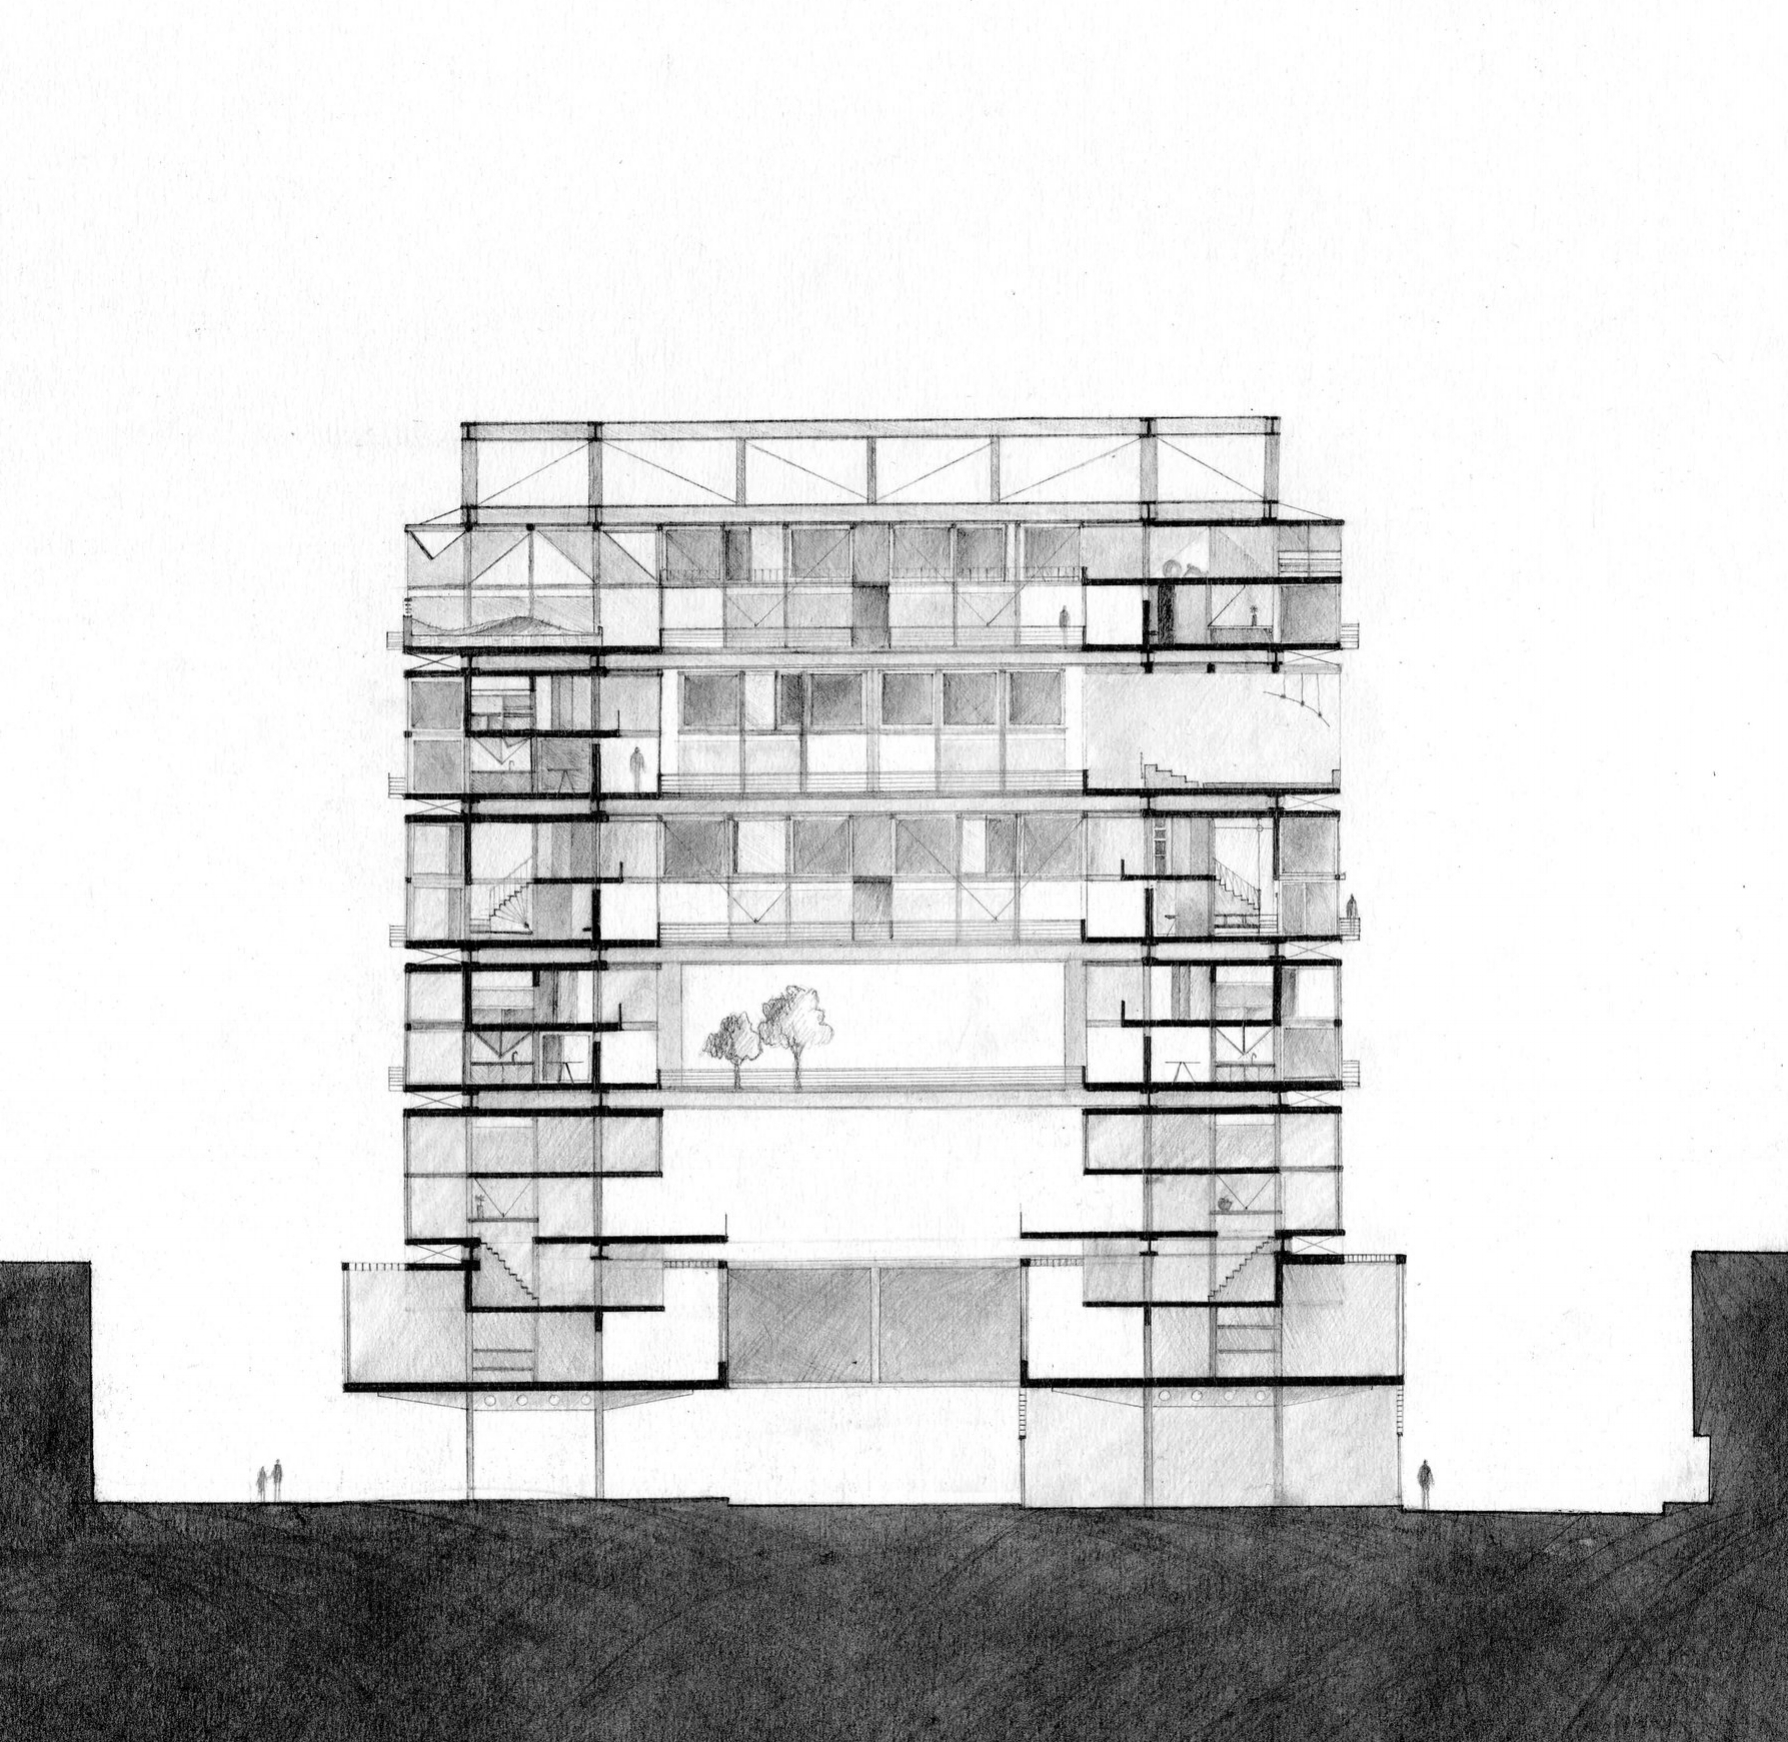 BUILDING SECTION / Graphite Rendering